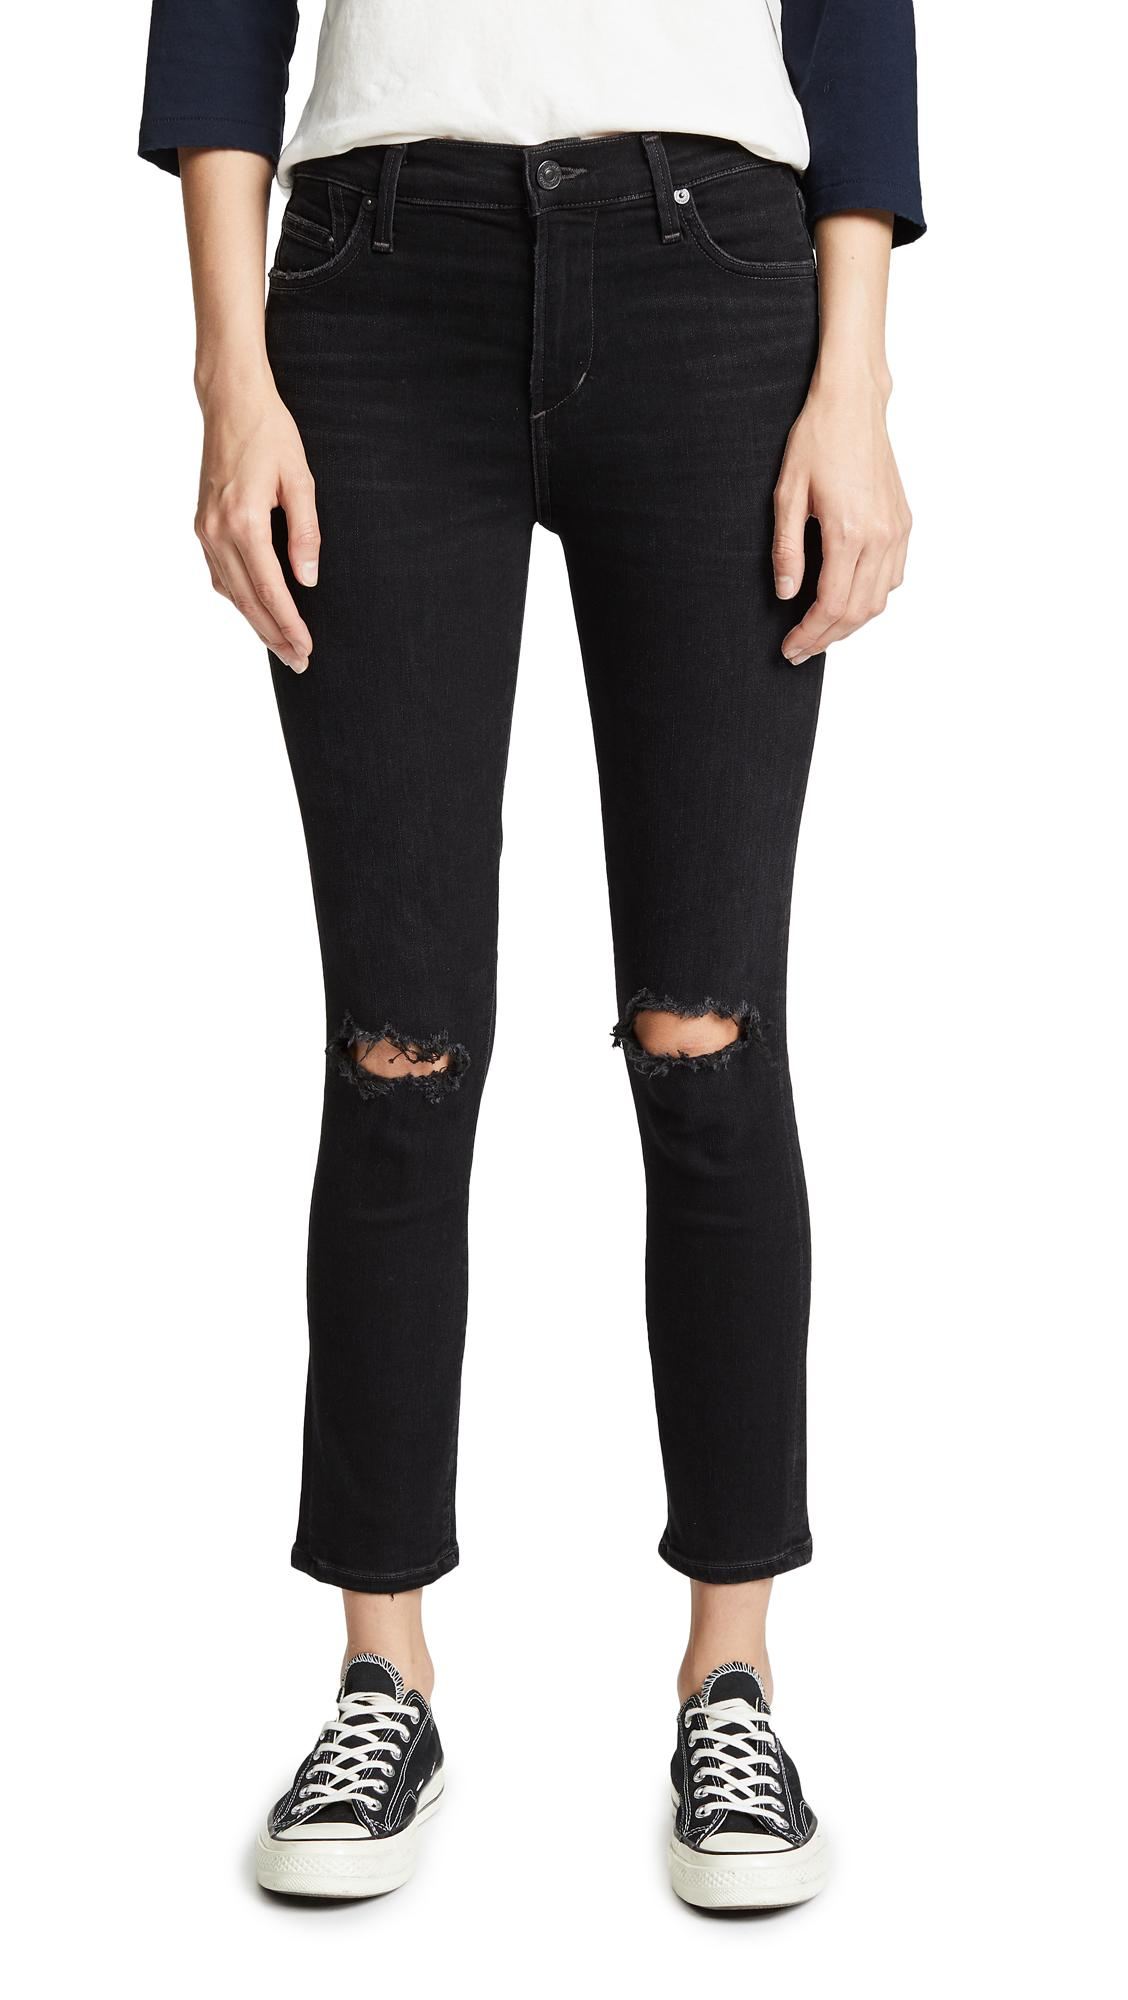 53ed0abb9265 Citizens Of Humanity Rocket Crop High Rise Skinny Jeans In Siren ...